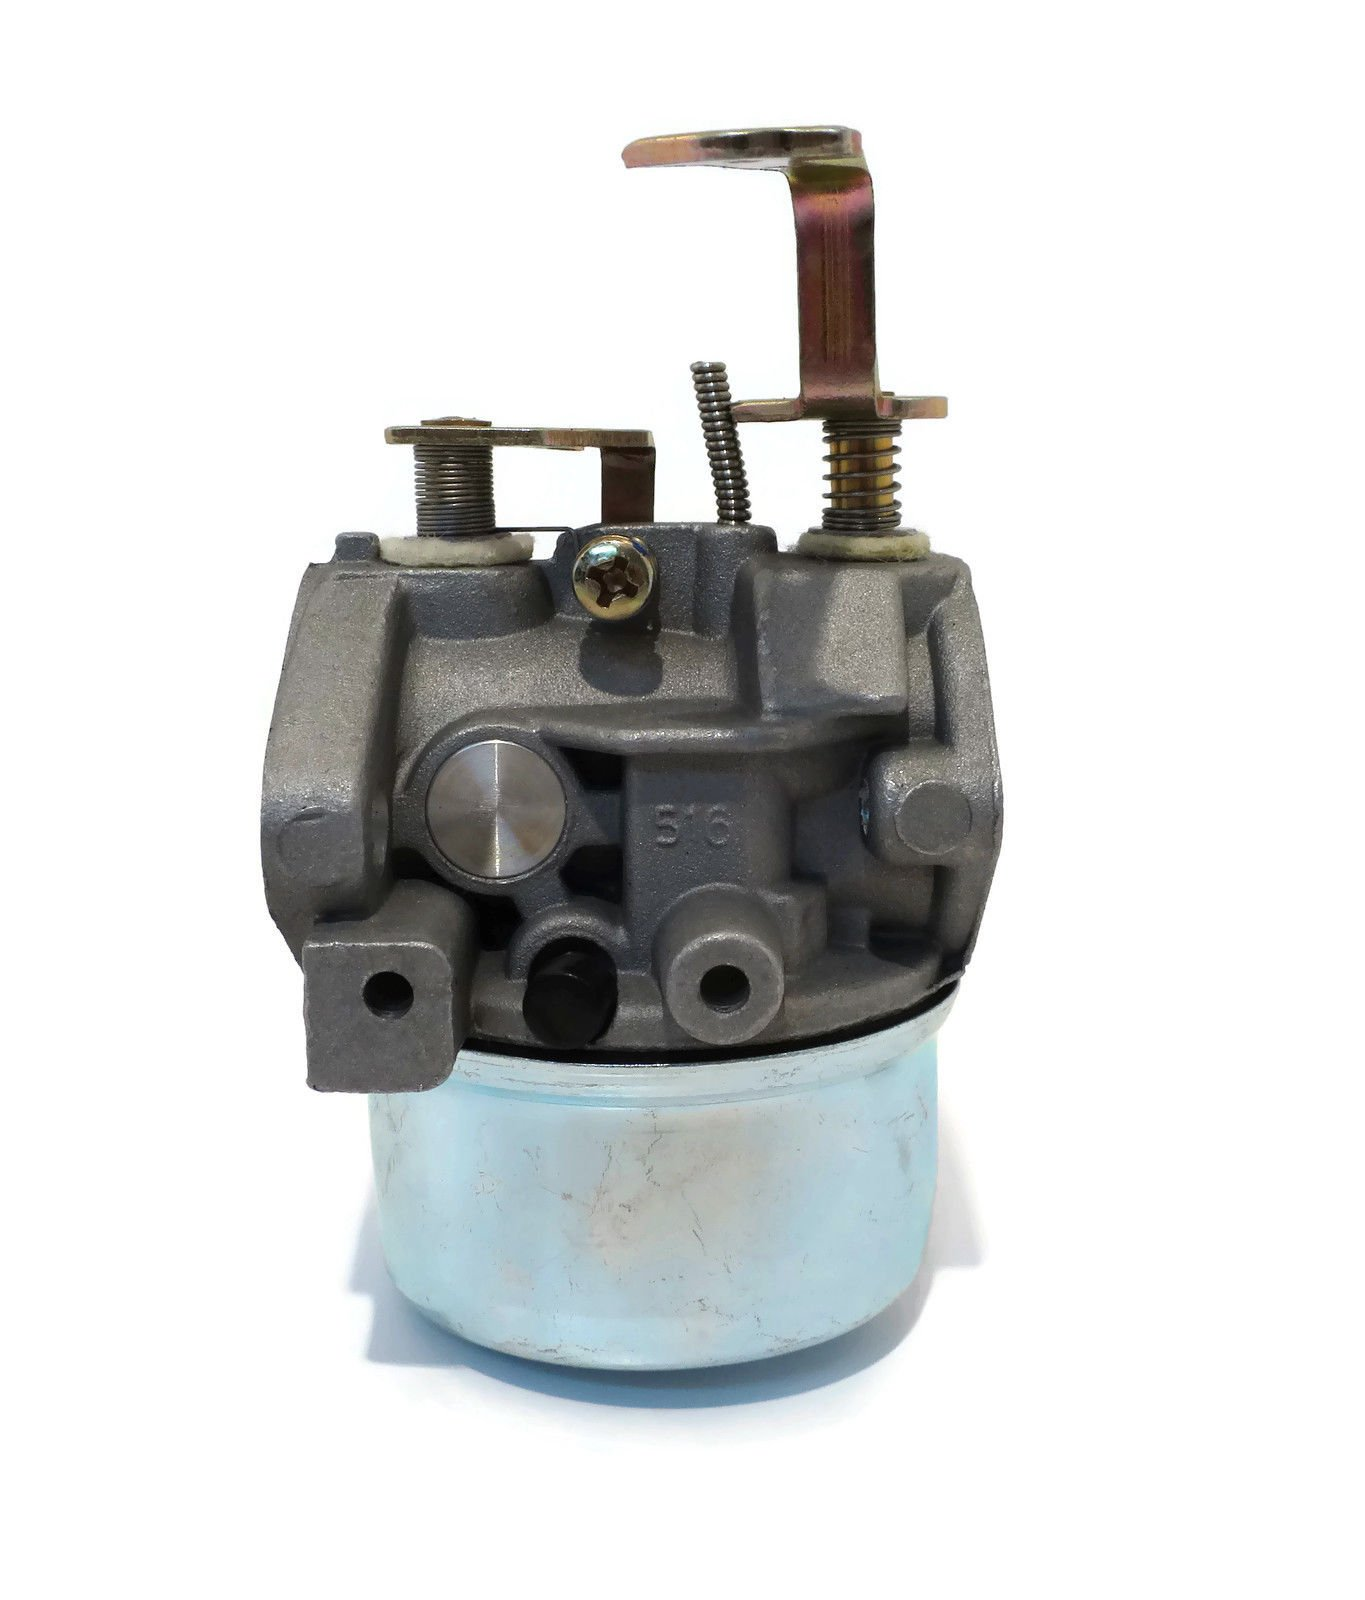 The ROP Shop Carburetor Carb for Tecumseh 640112 Stens 520-954, 056-318 HM80 HM90 HM100 Motor by The ROP Shop (Image #4)